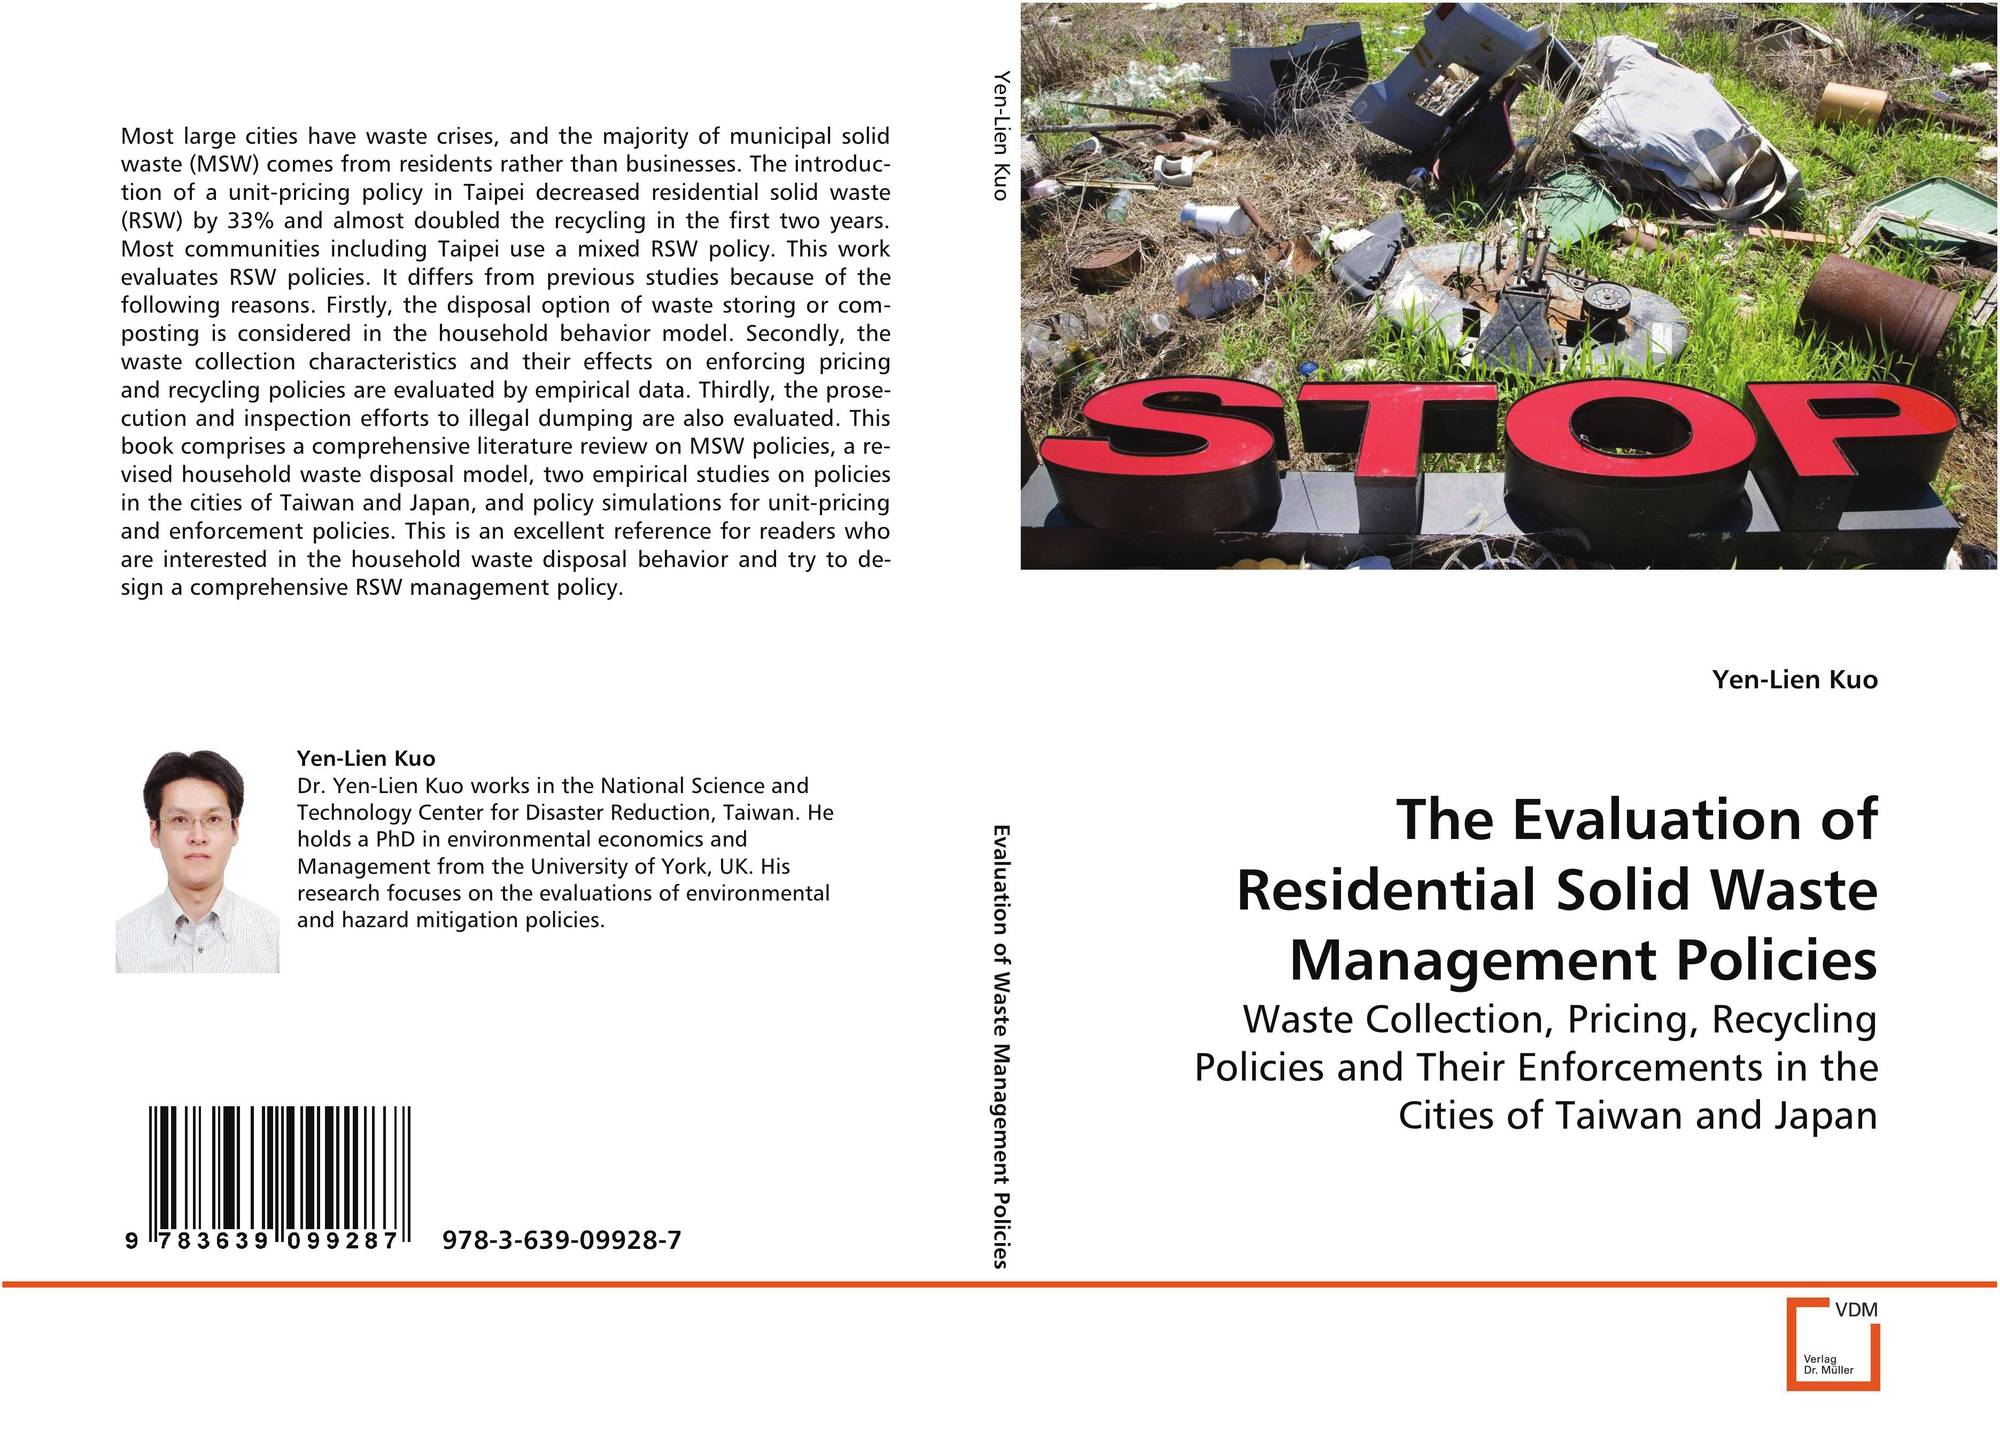 The Evaluation of Residential Solid Waste ManagementPolicies, 978-3